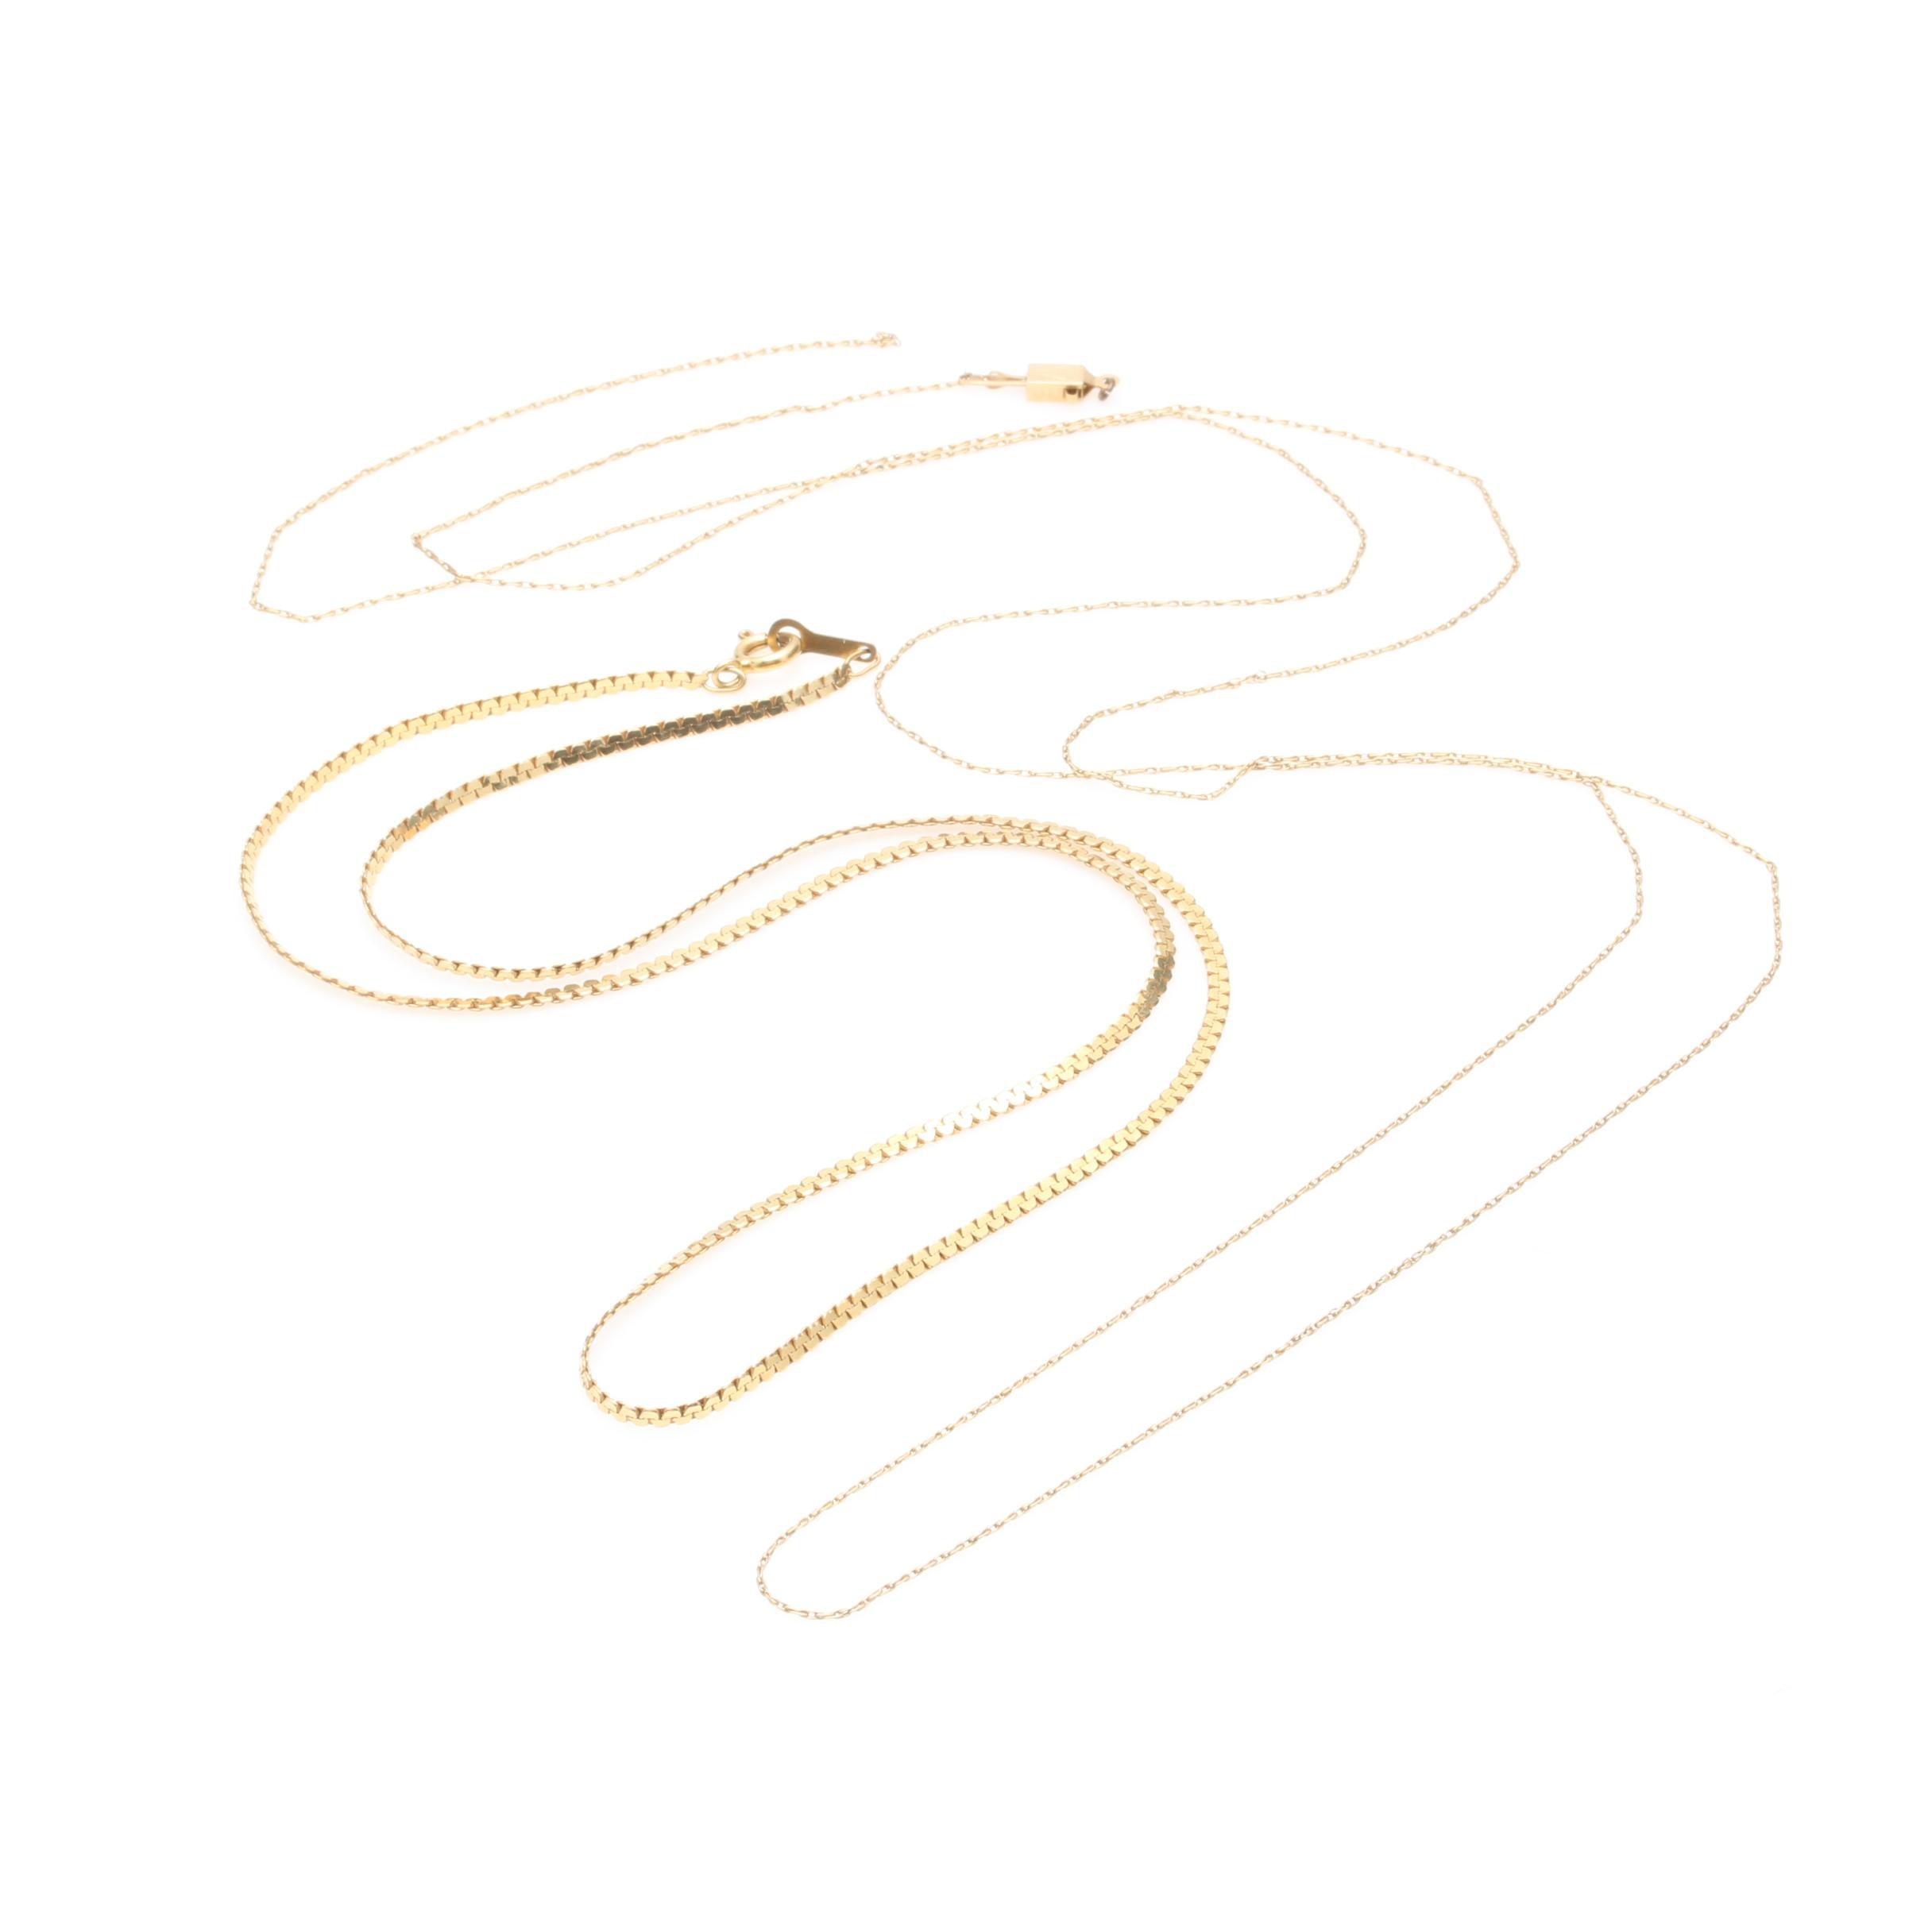 14K Yellow Gold C-Link Necklace with Scrap Chain